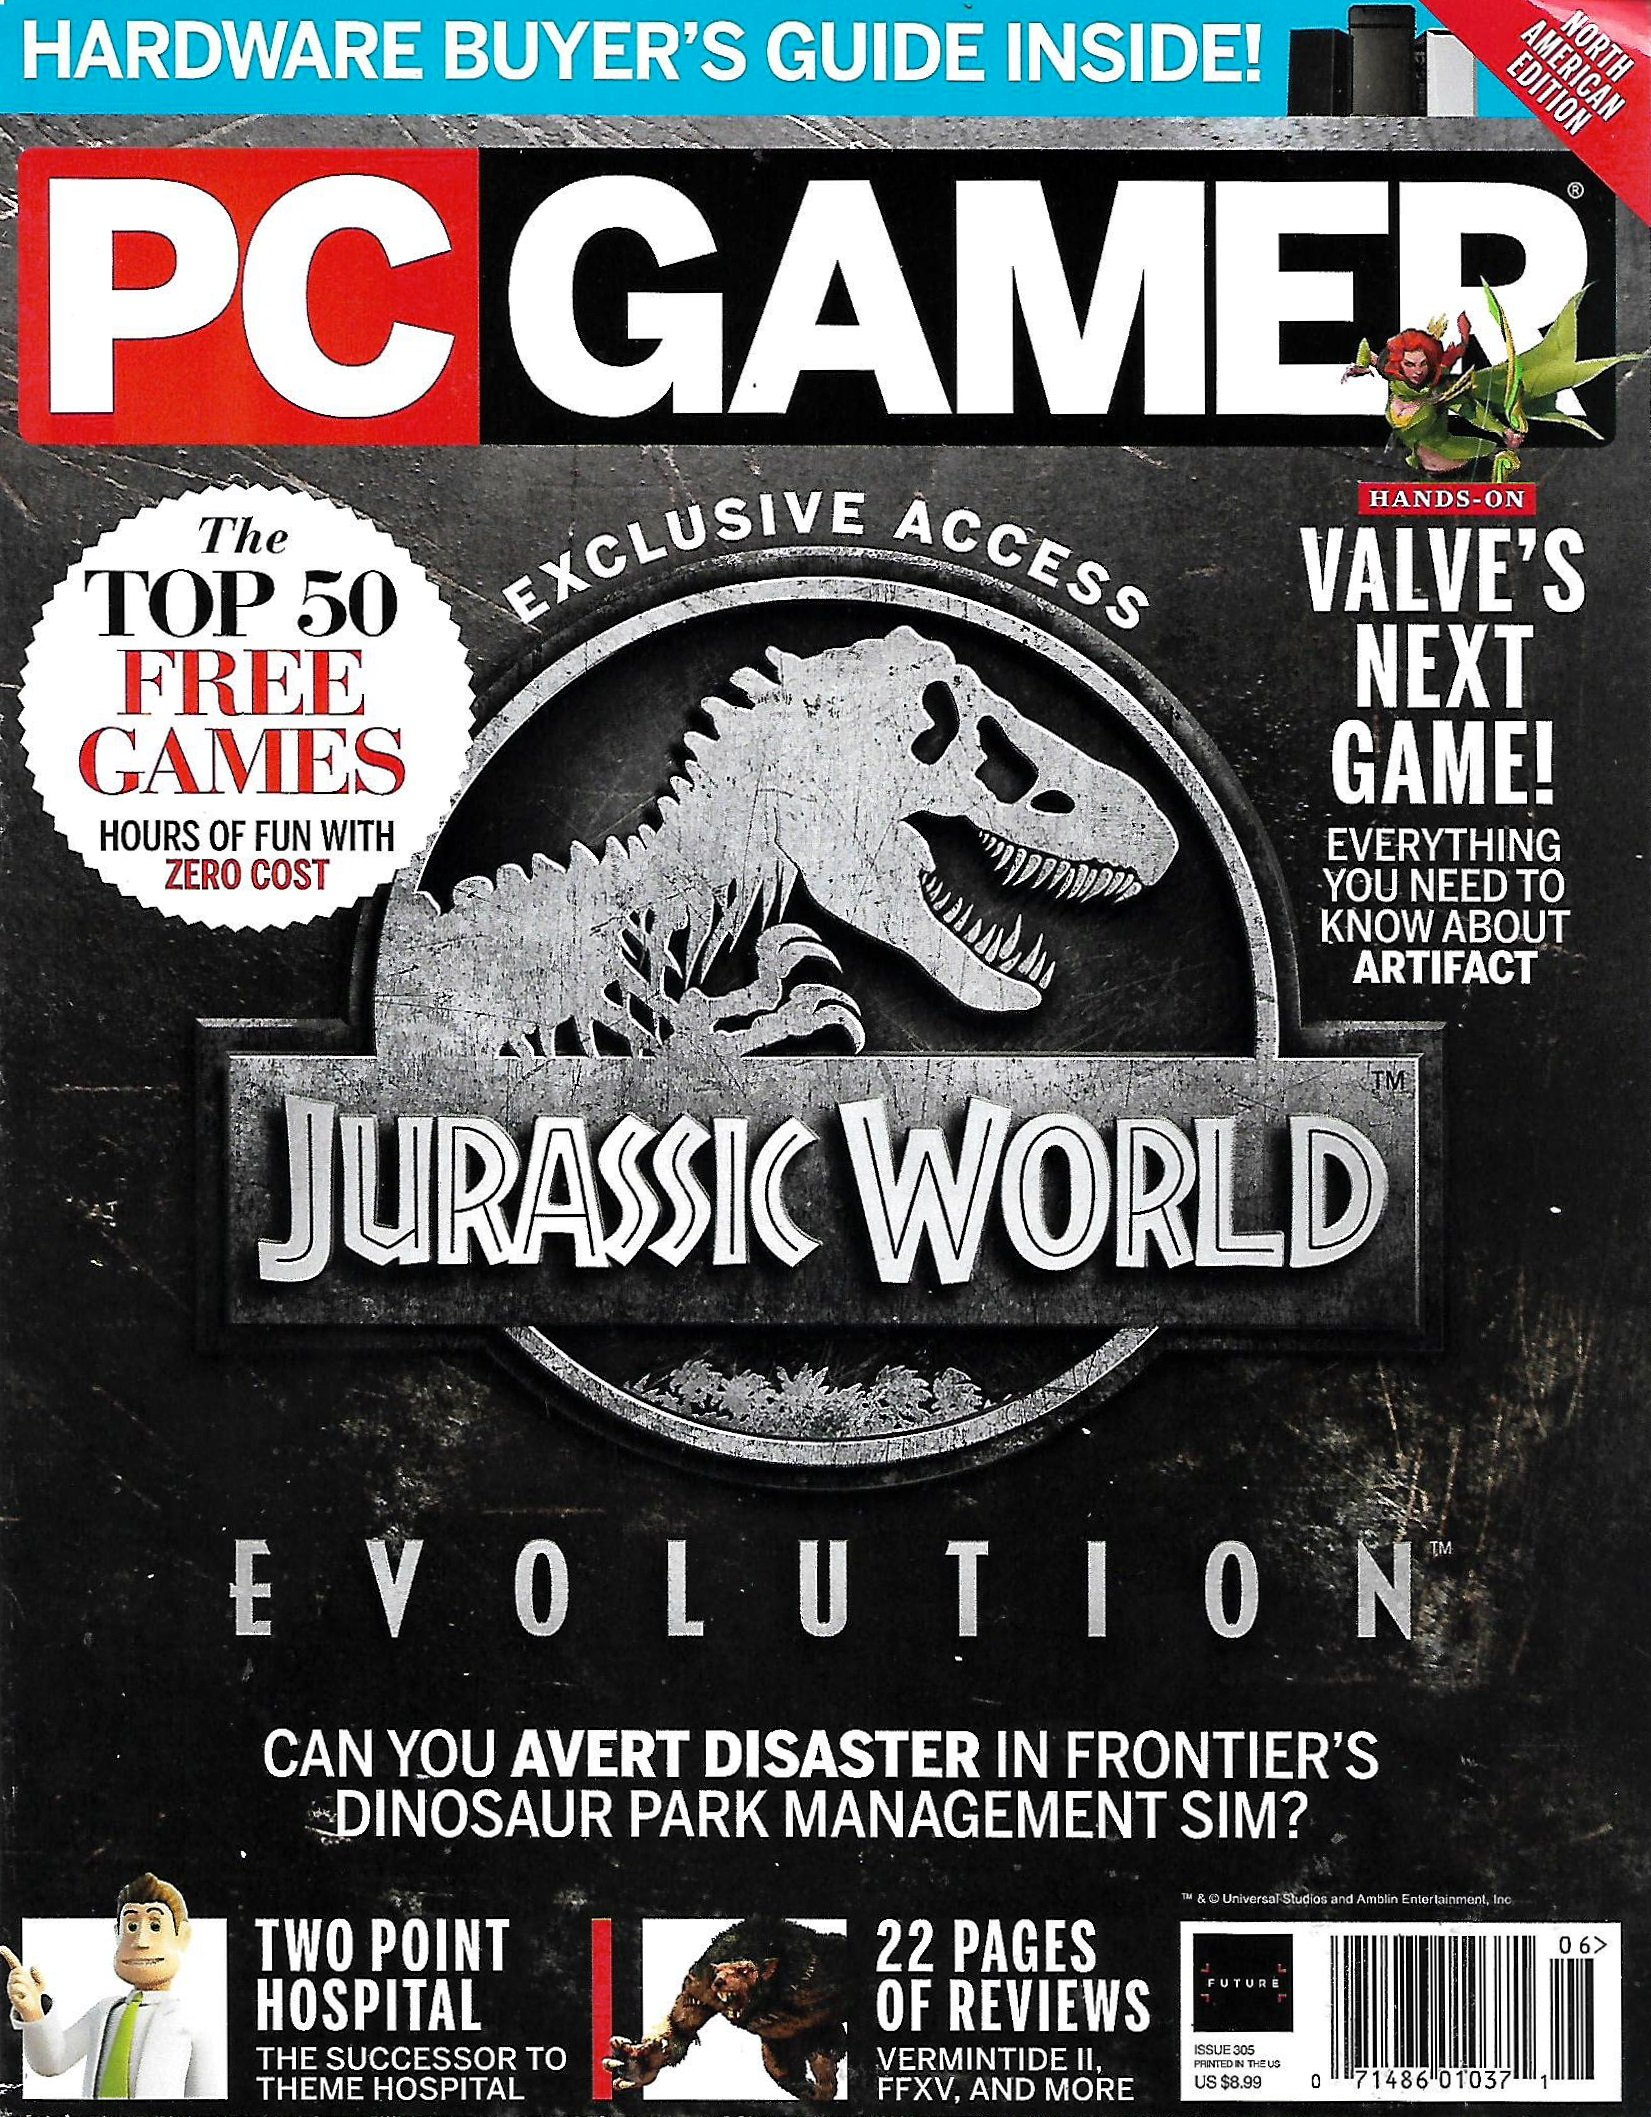 PC GAMER Magazine June 2018 JURASSIC WORLD EVOLUTION, Top 50